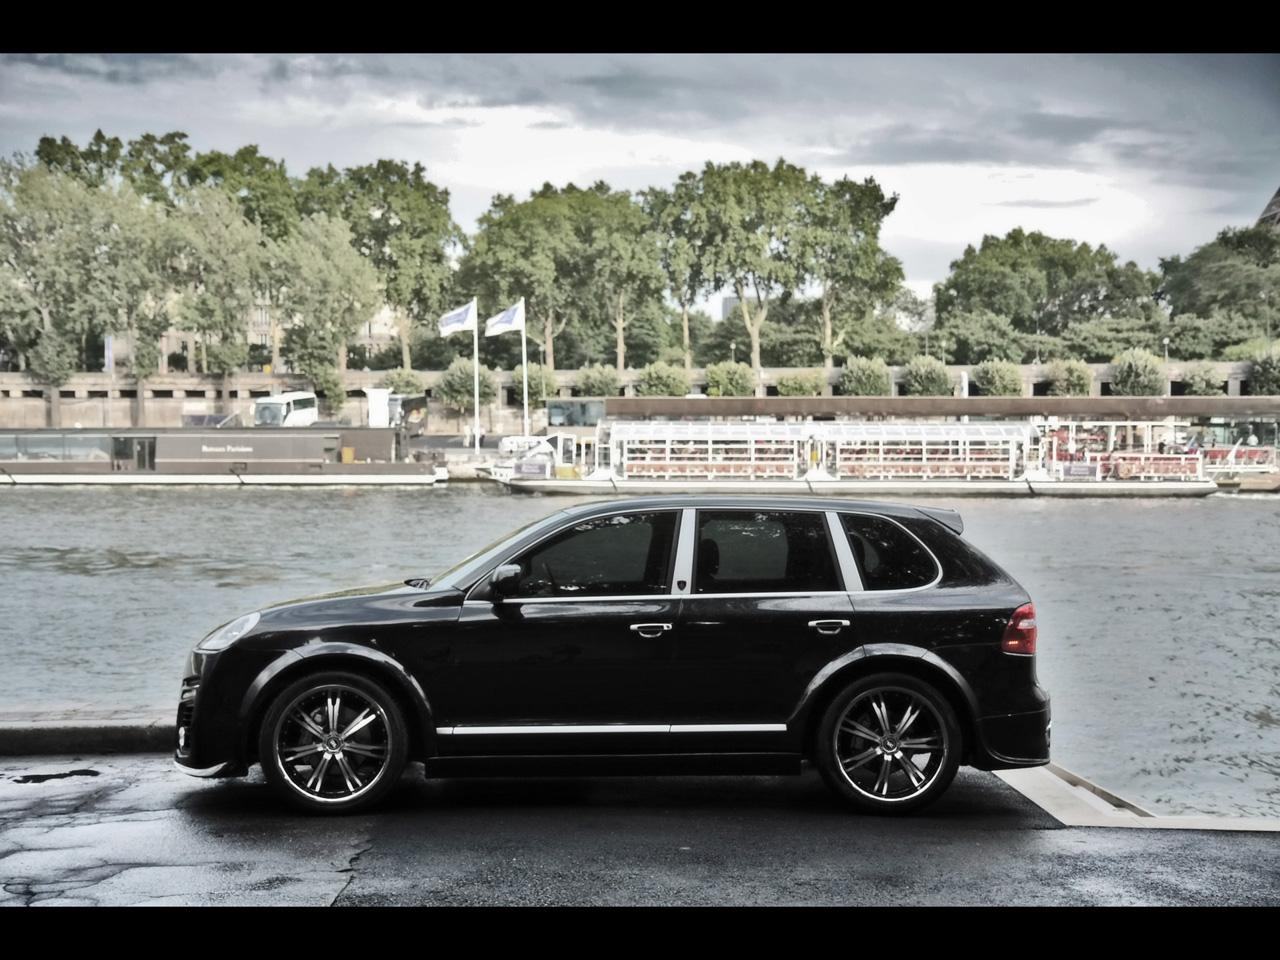 2010 porsche cayenne information and photos zombiedrive. Black Bedroom Furniture Sets. Home Design Ideas